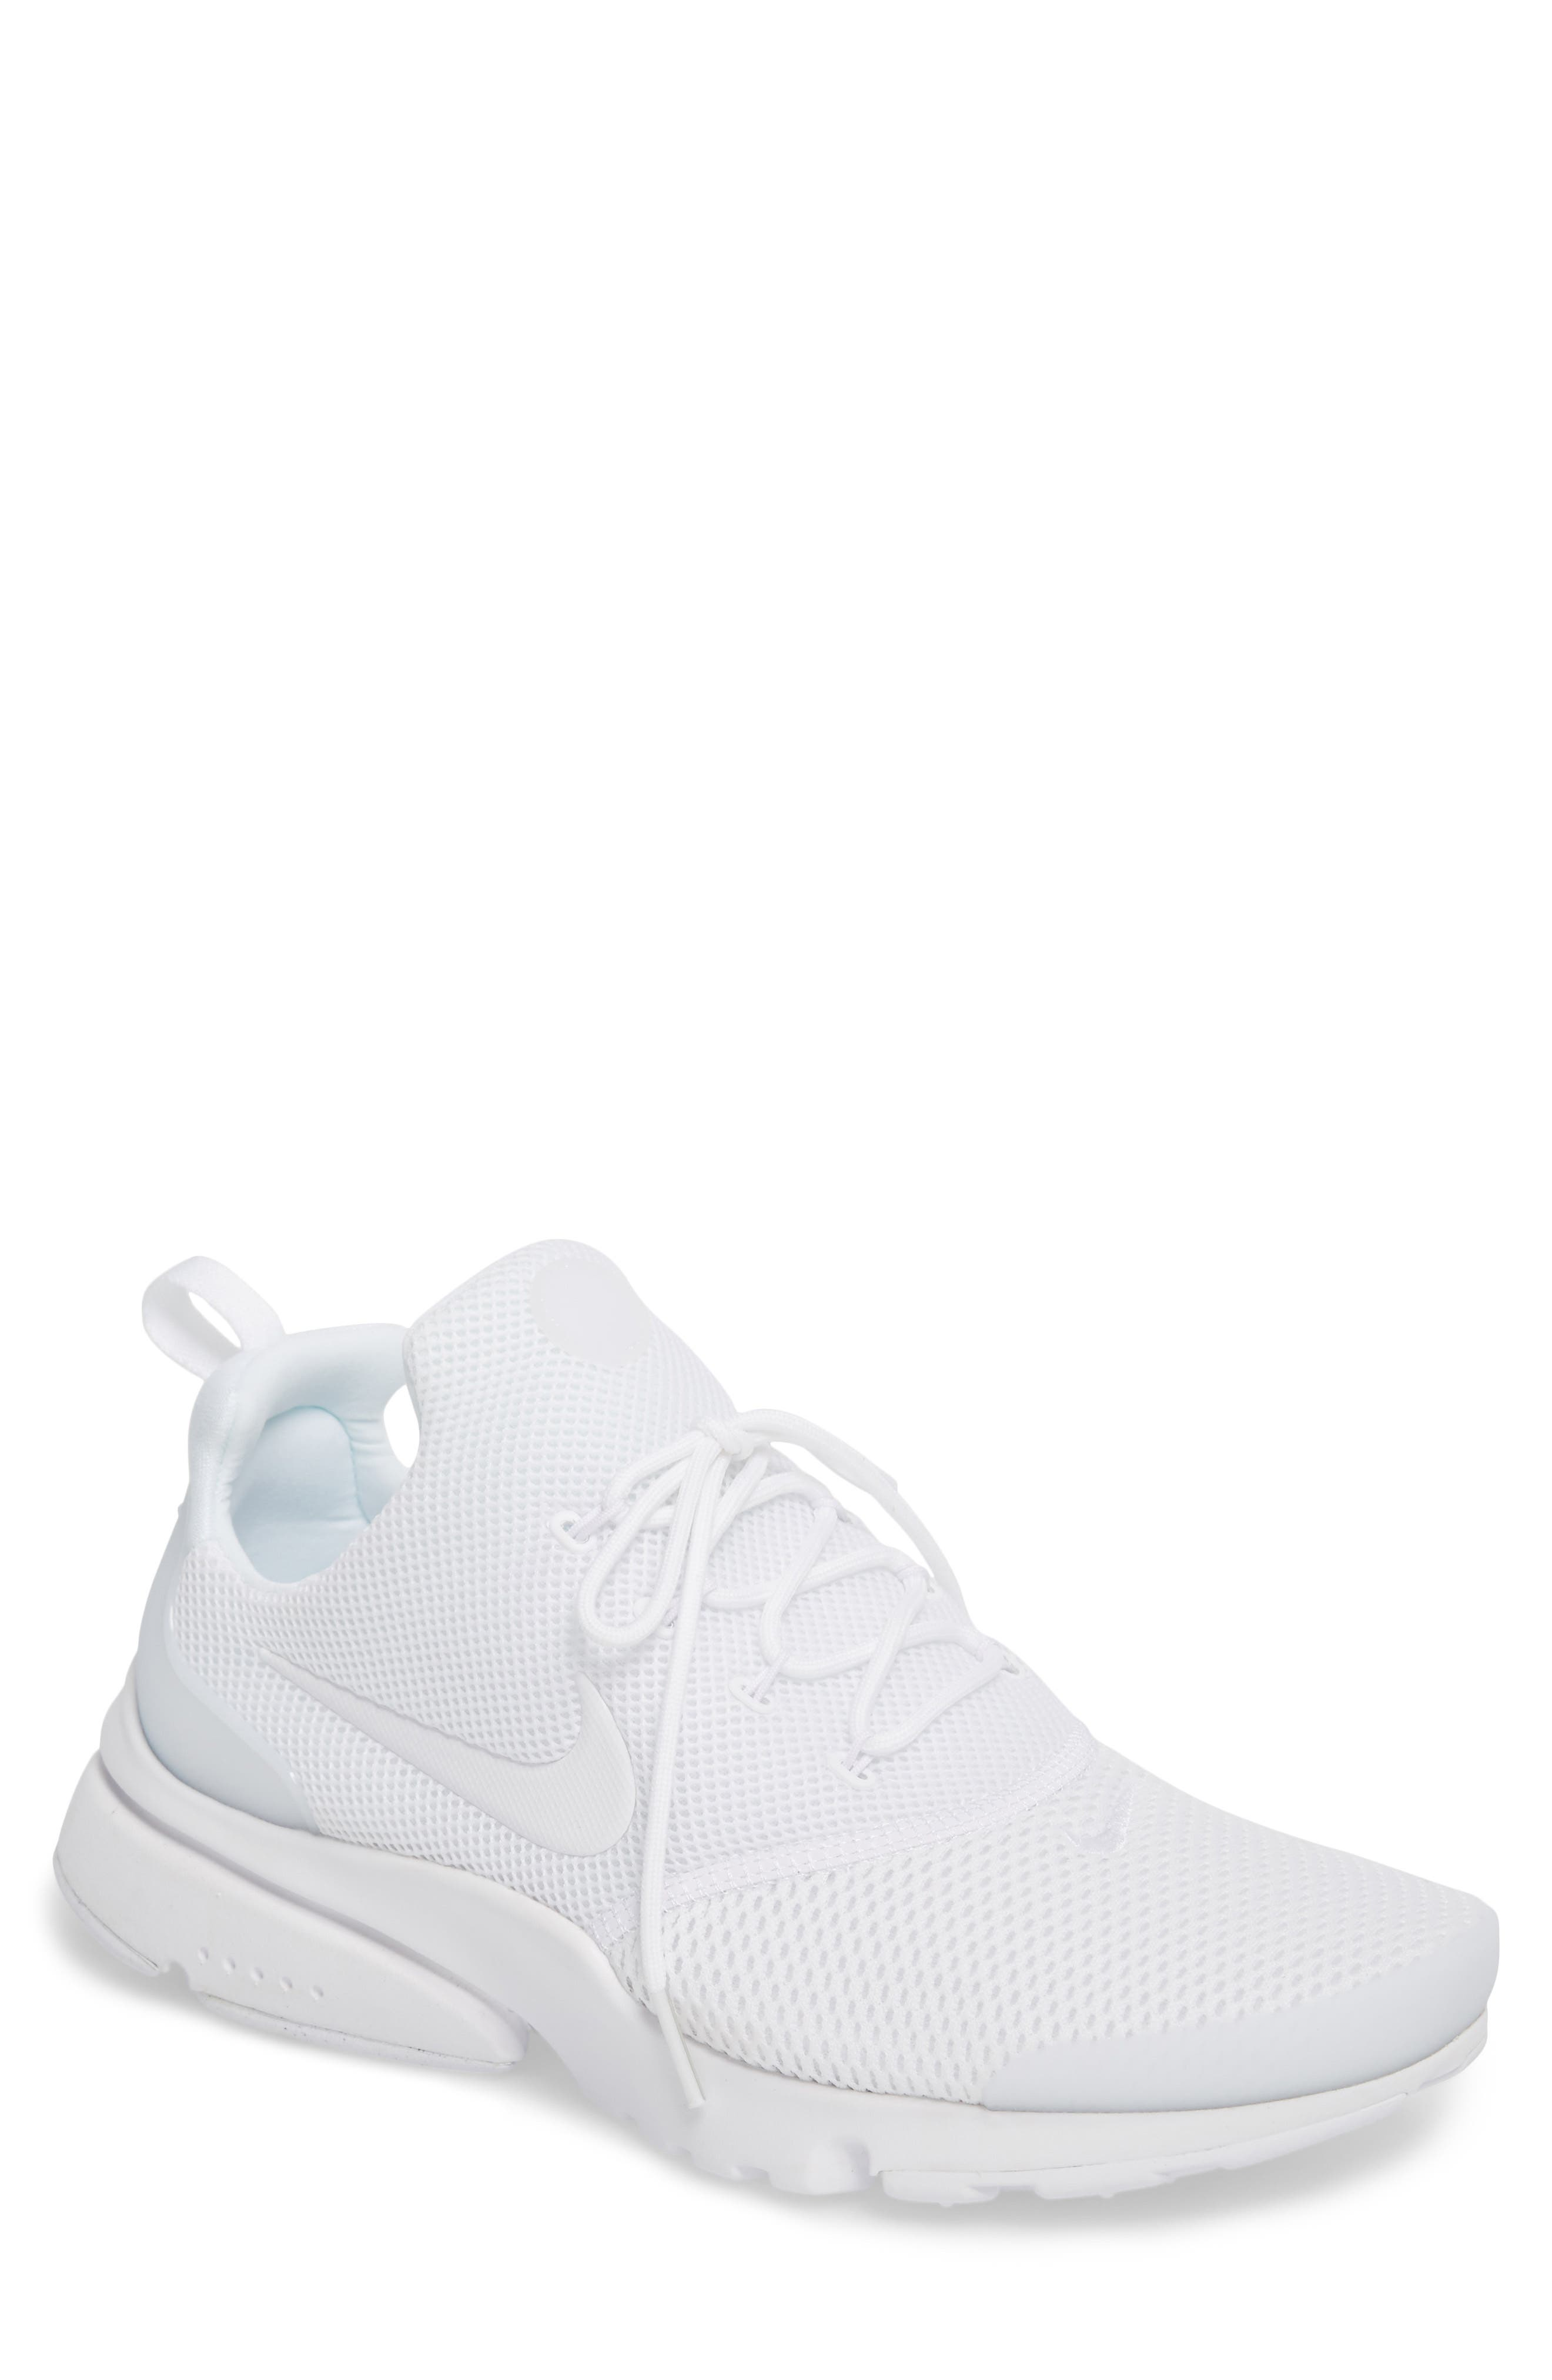 Main Image - Nike Presto Fly Sneaker (Men)